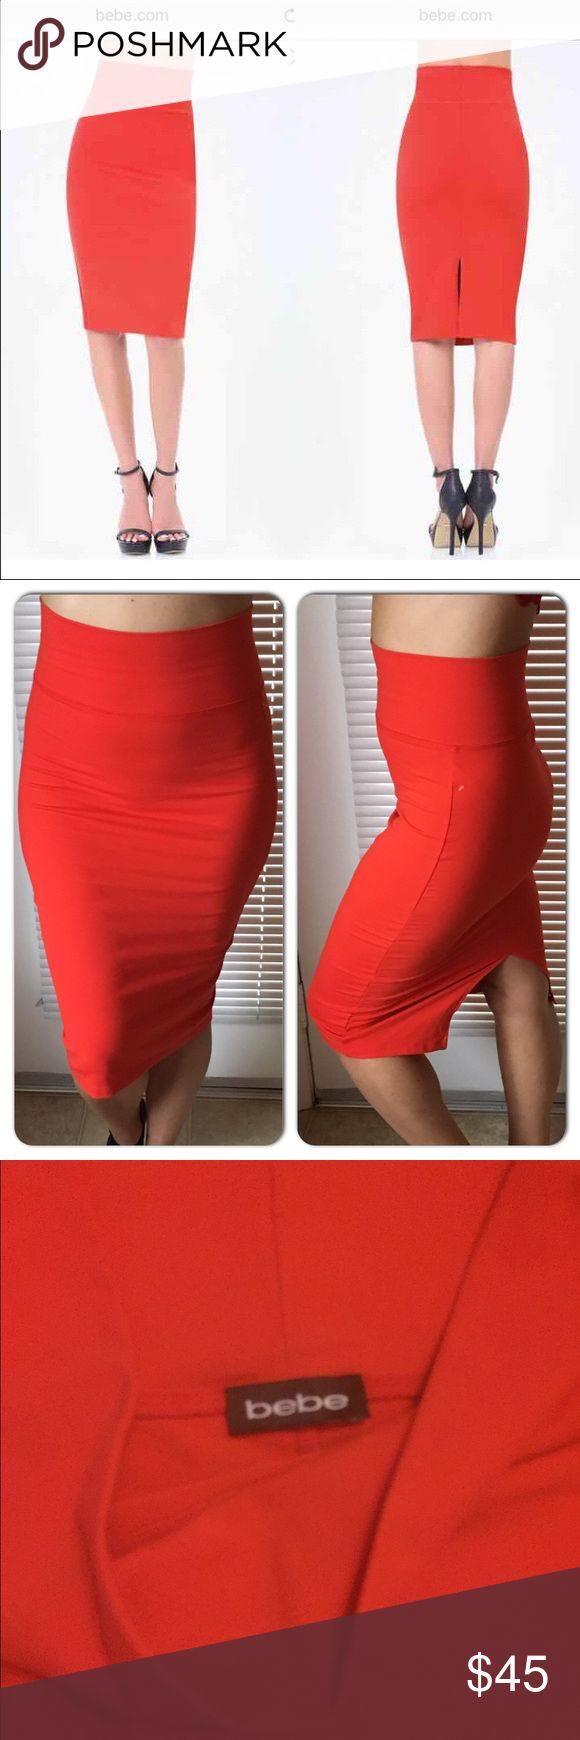 NWOT BEBE ❤ High waisted red skirt Super cute re…